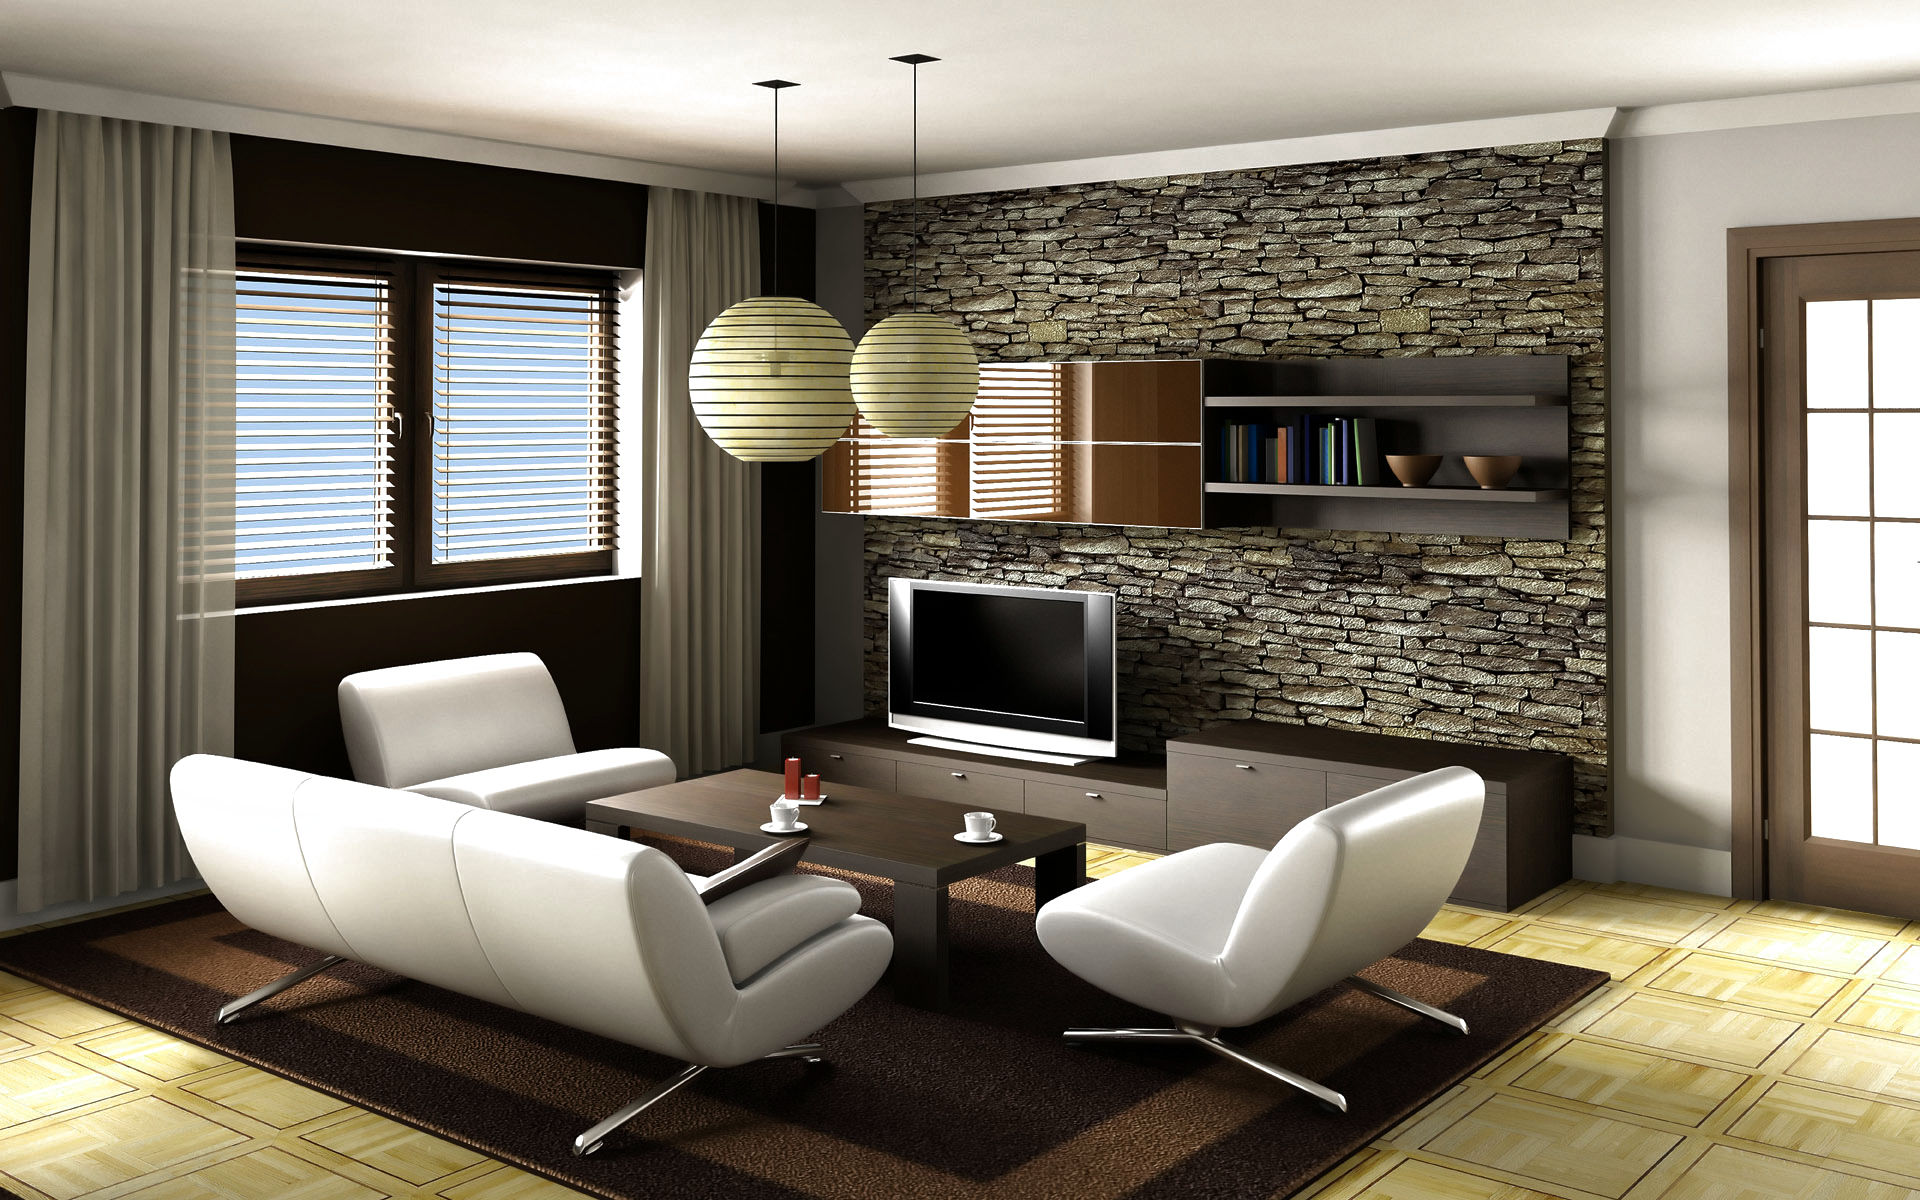 16 modern living room furniture ideas design hgnv com for Living room ideas with recliners